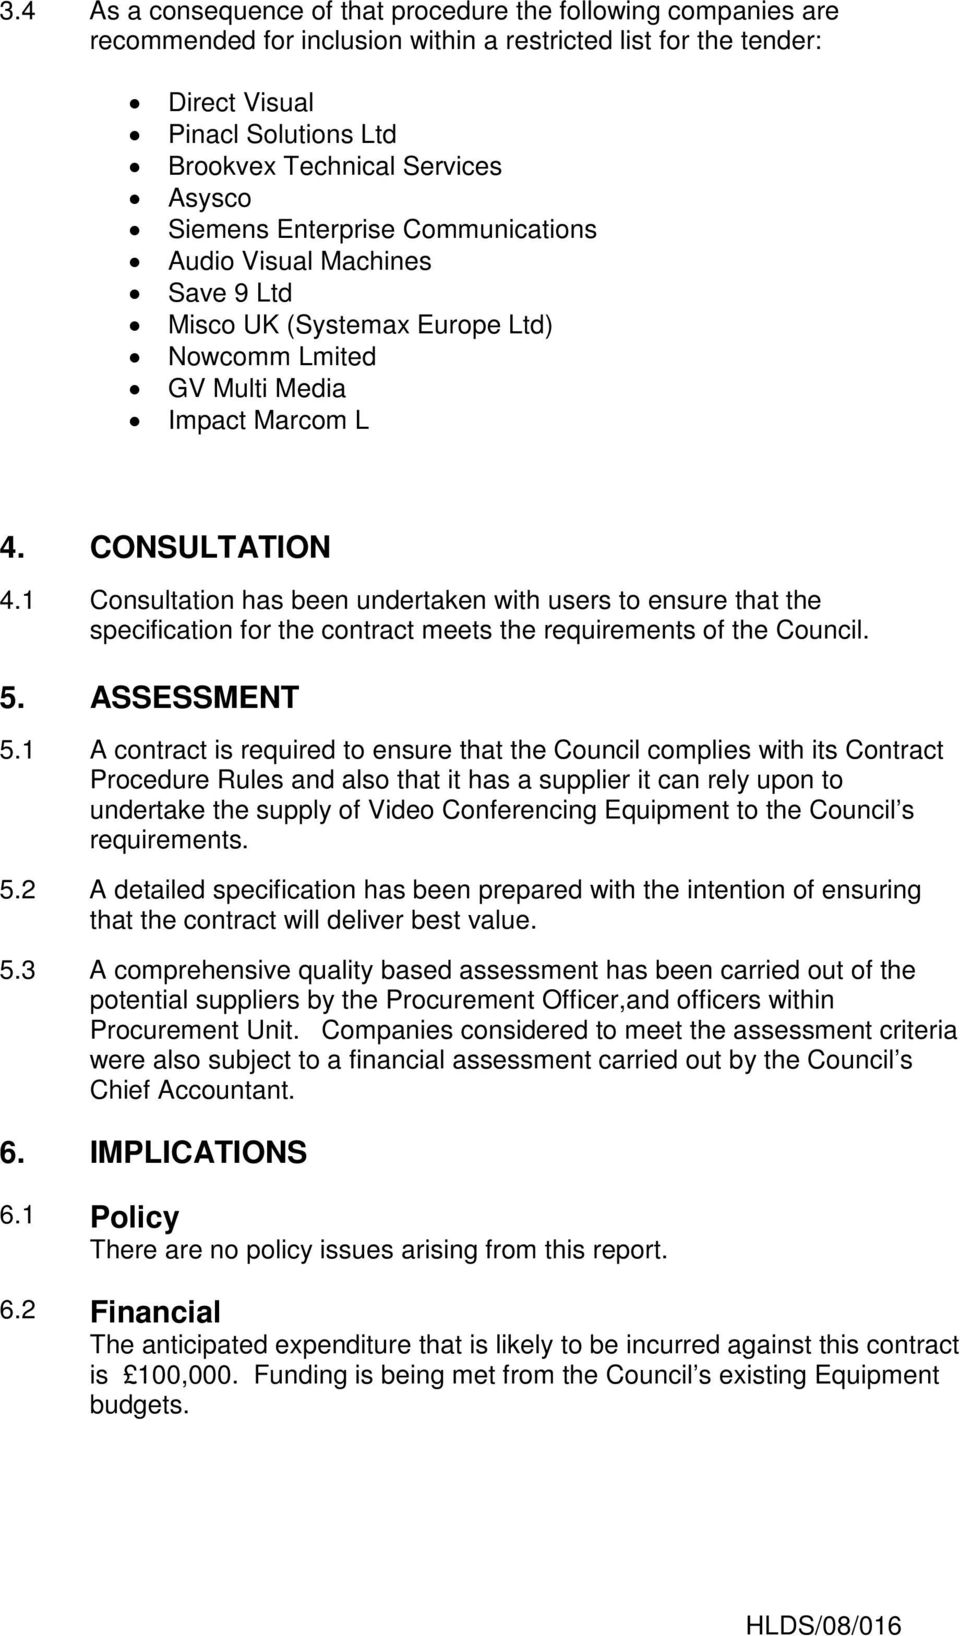 1 Consultation has been undertaken with users to ensure that the specification for the contract meets the requirements of the Council. 5. ASSESSMENT 5.